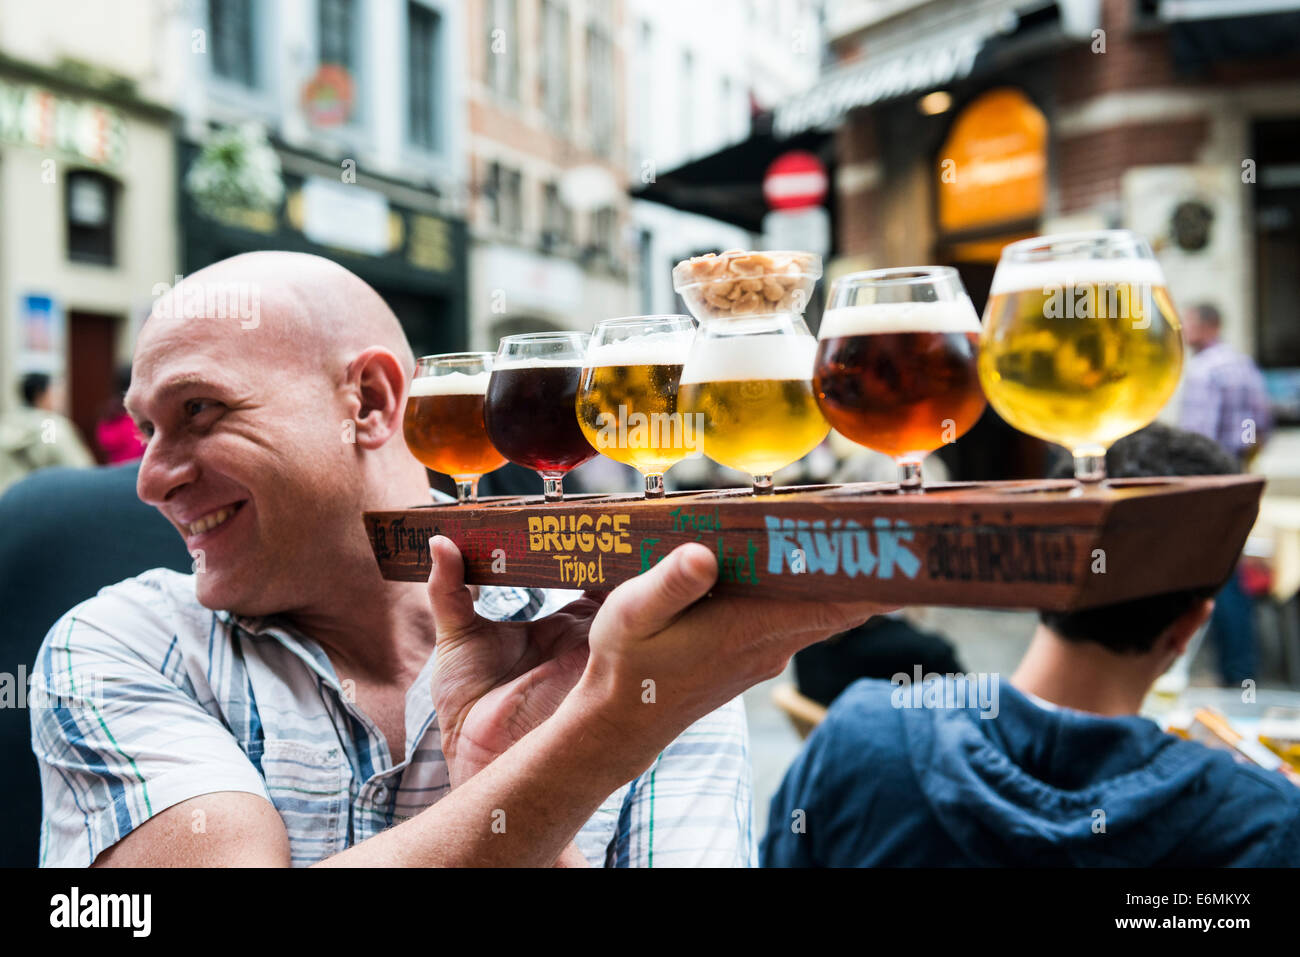 Beer tasting in one of the vibrant bars in the historical center of Brussels. Stock Photo